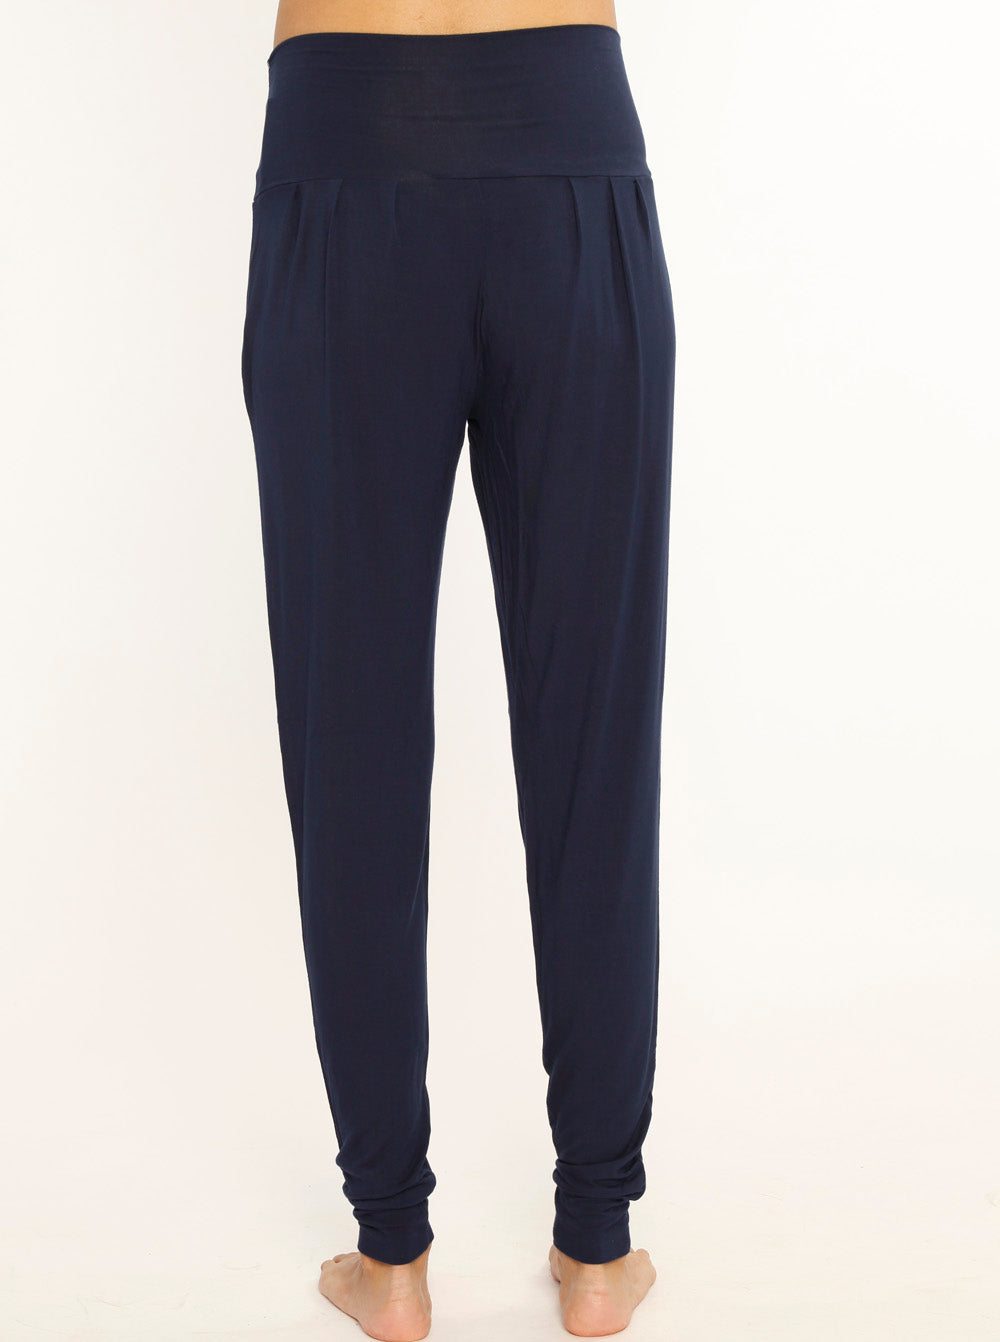 """The Best Seller"" Bamboo Pants - Black/ Navy"